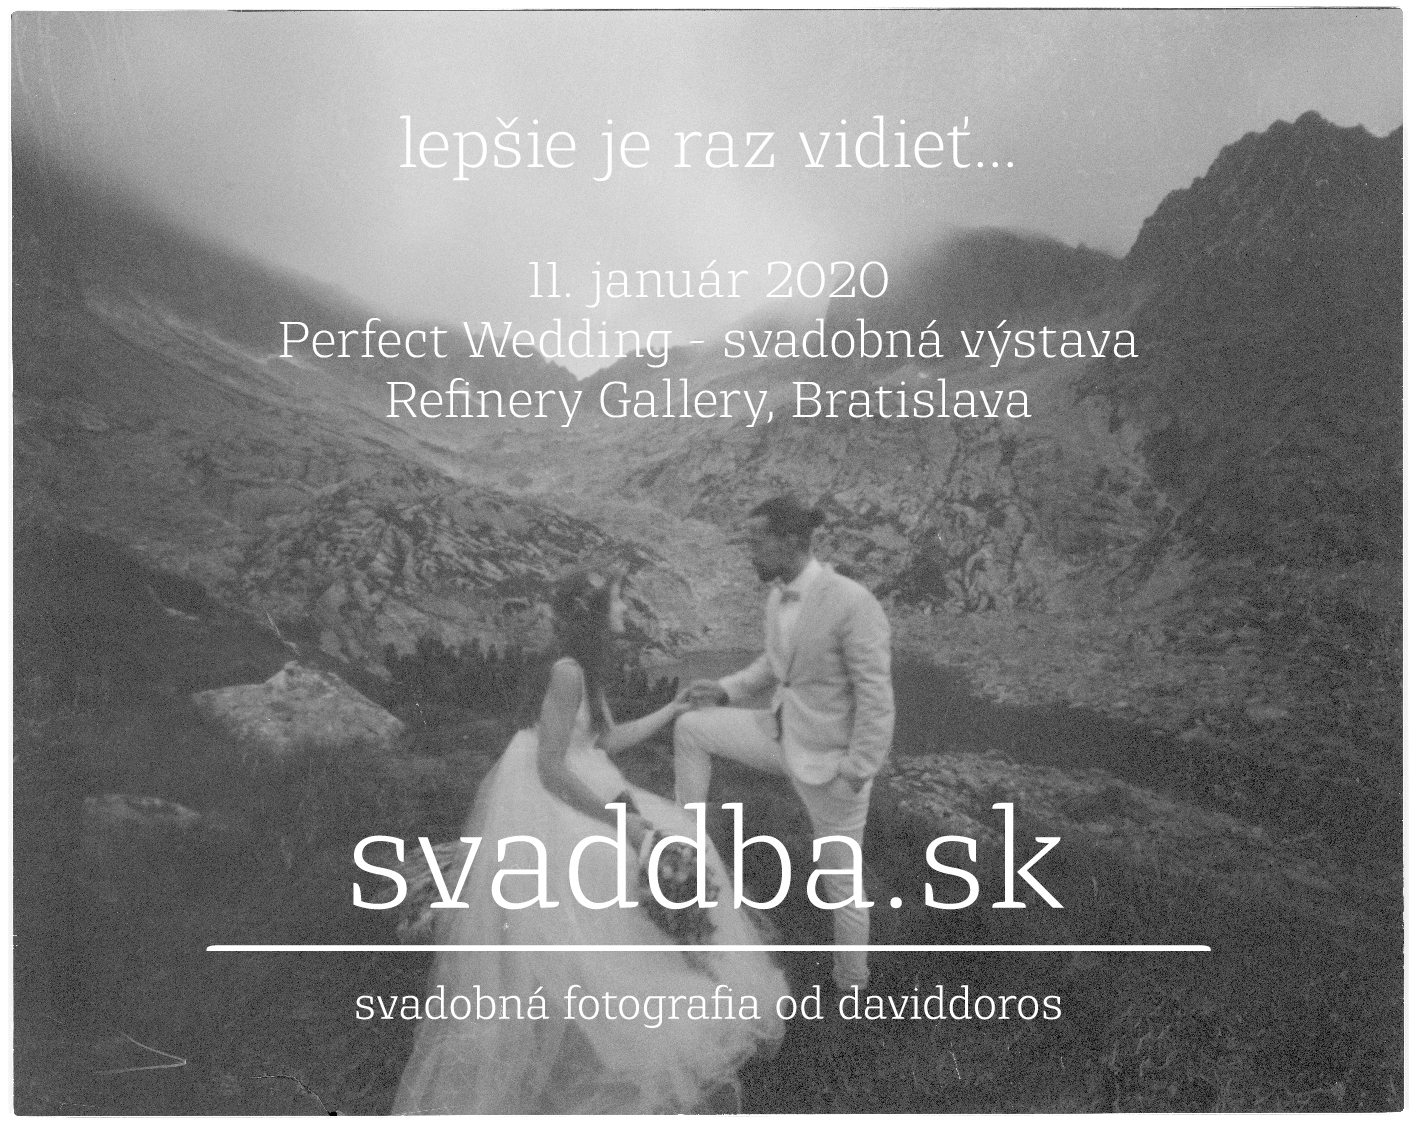 svaddbask Perfect Wedding 2020jpg